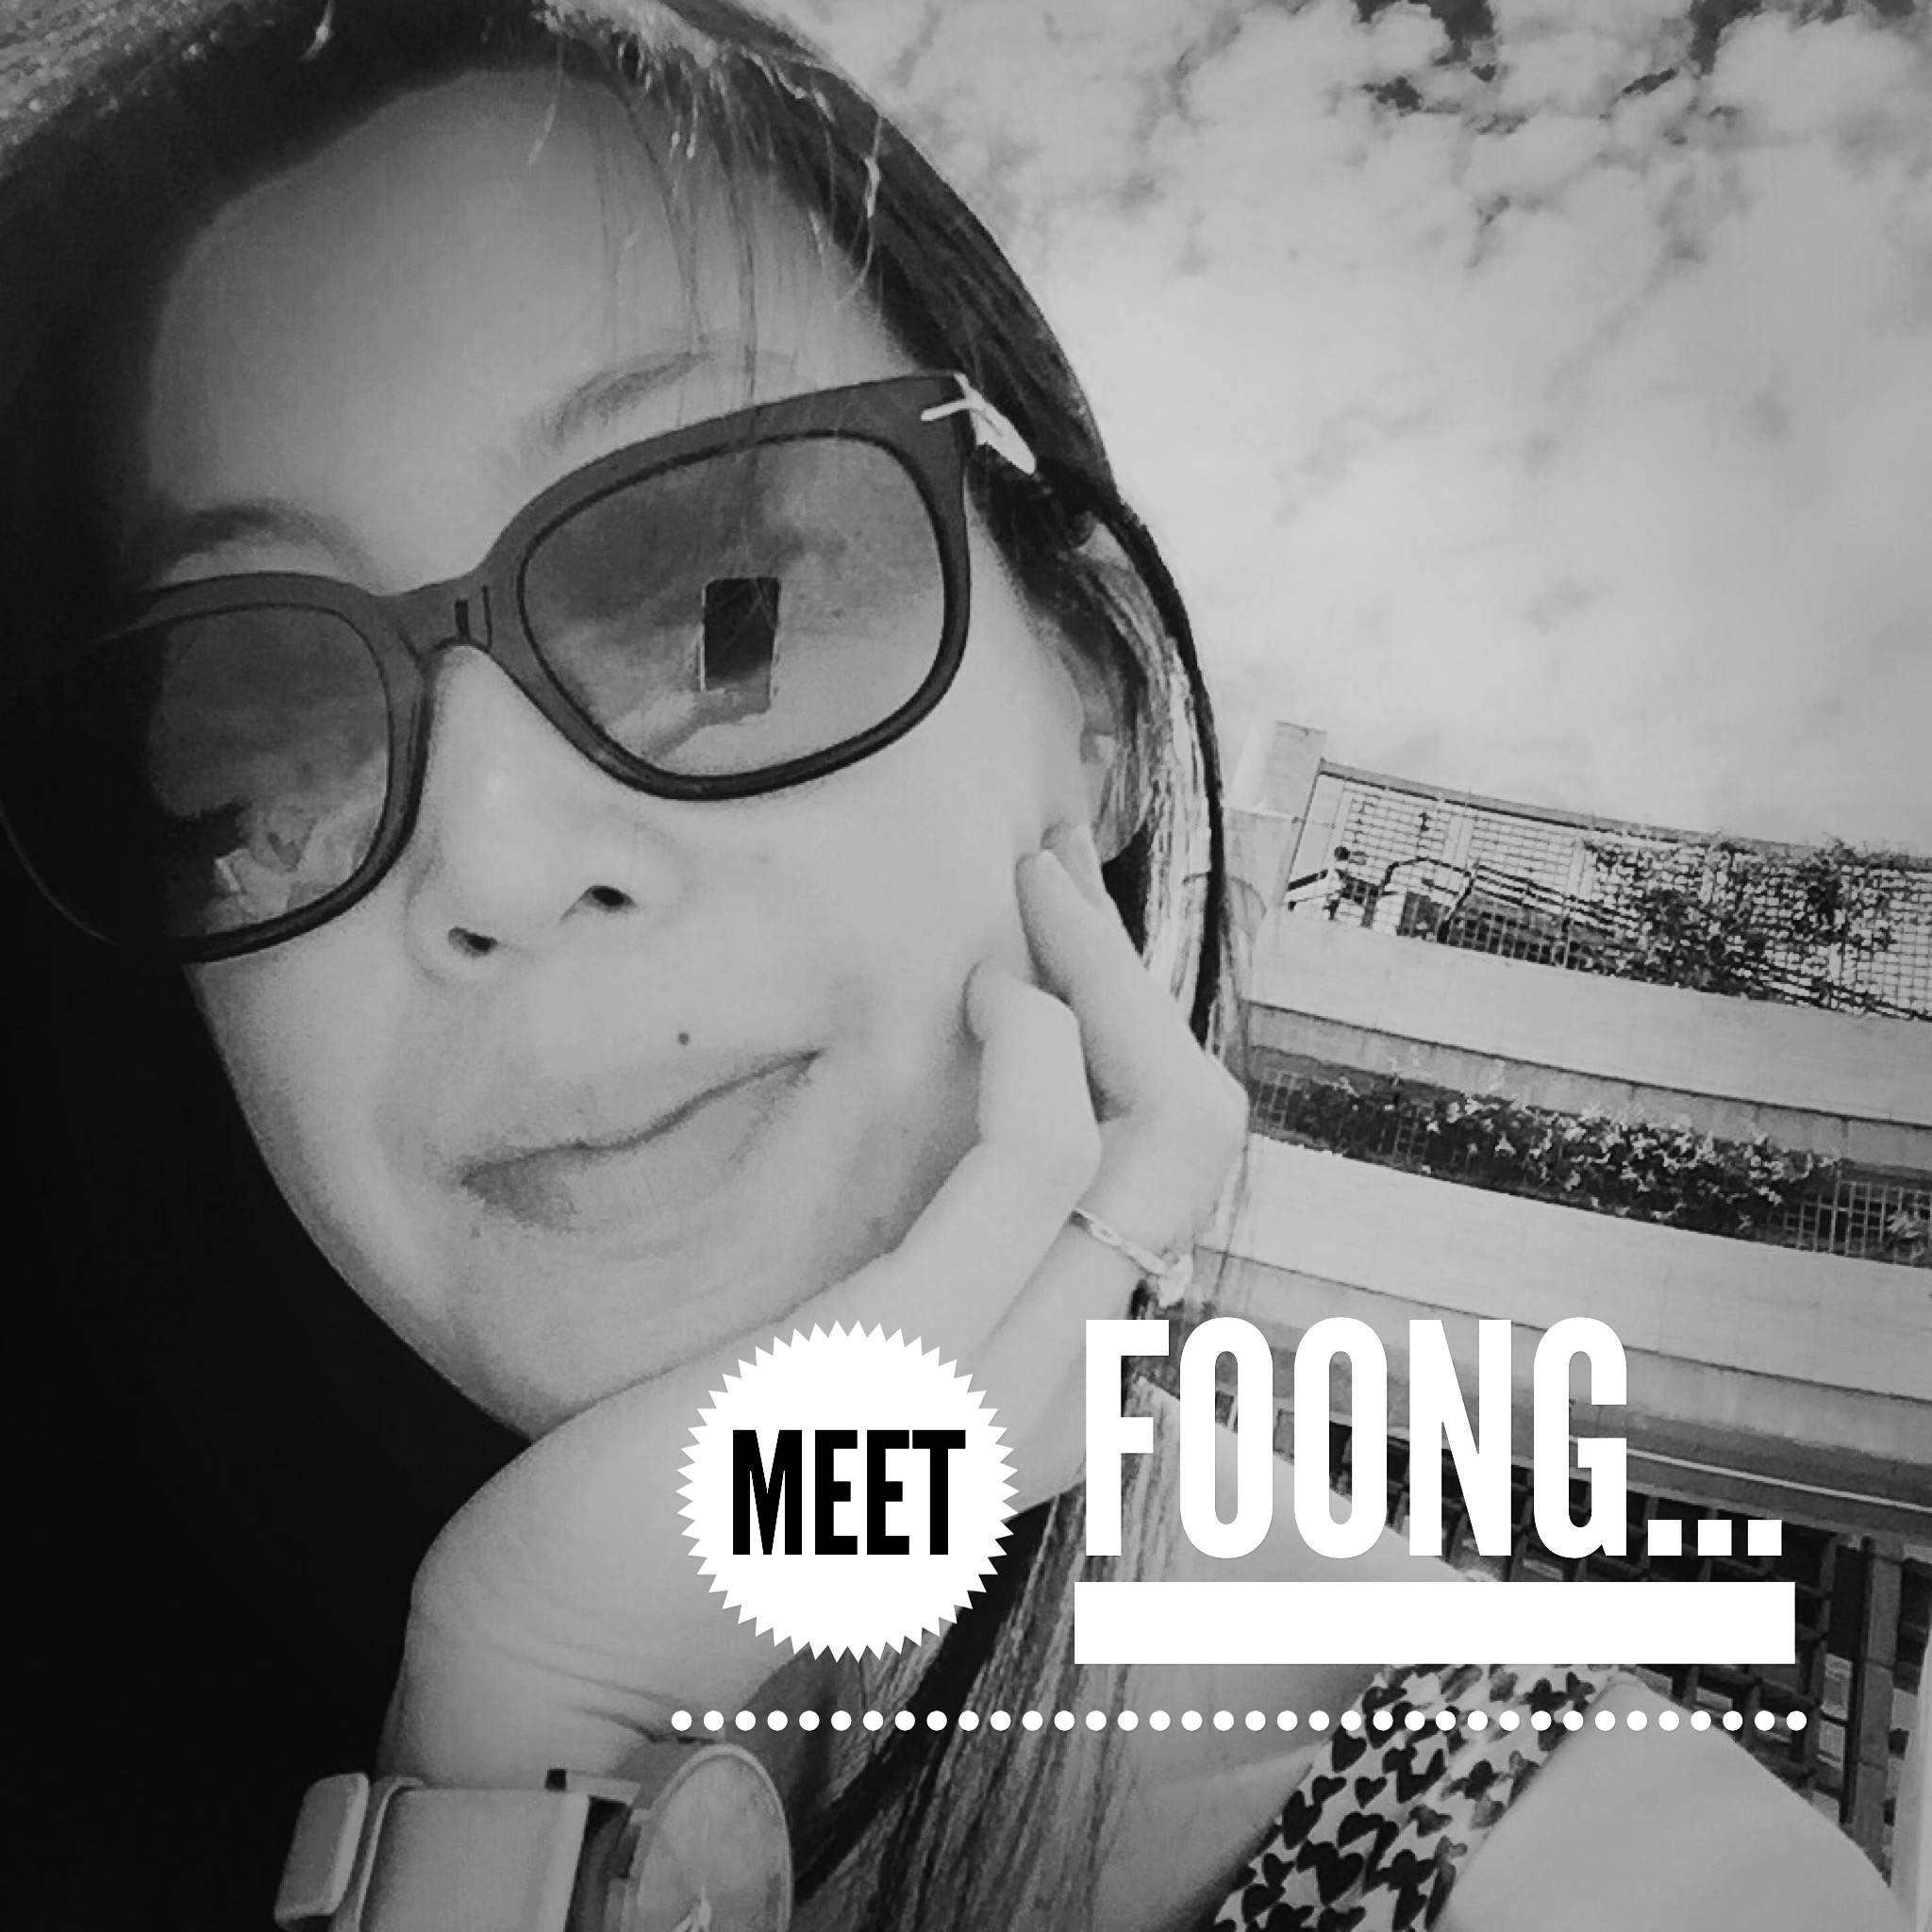 Foong  was born in London and spent her formative years in French schools in London and Kuala Lumpur, Malaysia. After graduating from Cambridge in 2005 with a double degree in Law with French Law she joined PwC as a graduate where she became a Director specialising in tax structuring for real estate and private equity funds. In 2019, Foong left PwC to become the founder of a social impact startup.  In 2014, Foong founded a blog,  Suit & Pie , documenting her professional journey at PwC and interviewing inspiring leaders and entrepreneurs. The blog accumulated over 20,000 reads in its first year and even landed Foong with a gig as a Judge at the Editorial Intelligence Comment Awards!  As Foong's network grew, she found herself drawn towards startups and the drive and tenacity of their founders, and hopes to share their stories with more people in the City through Suits & Startups. By bringing together people with such varied experience, outside of their normal networks, she truly believes the S&S community can create some great things together!